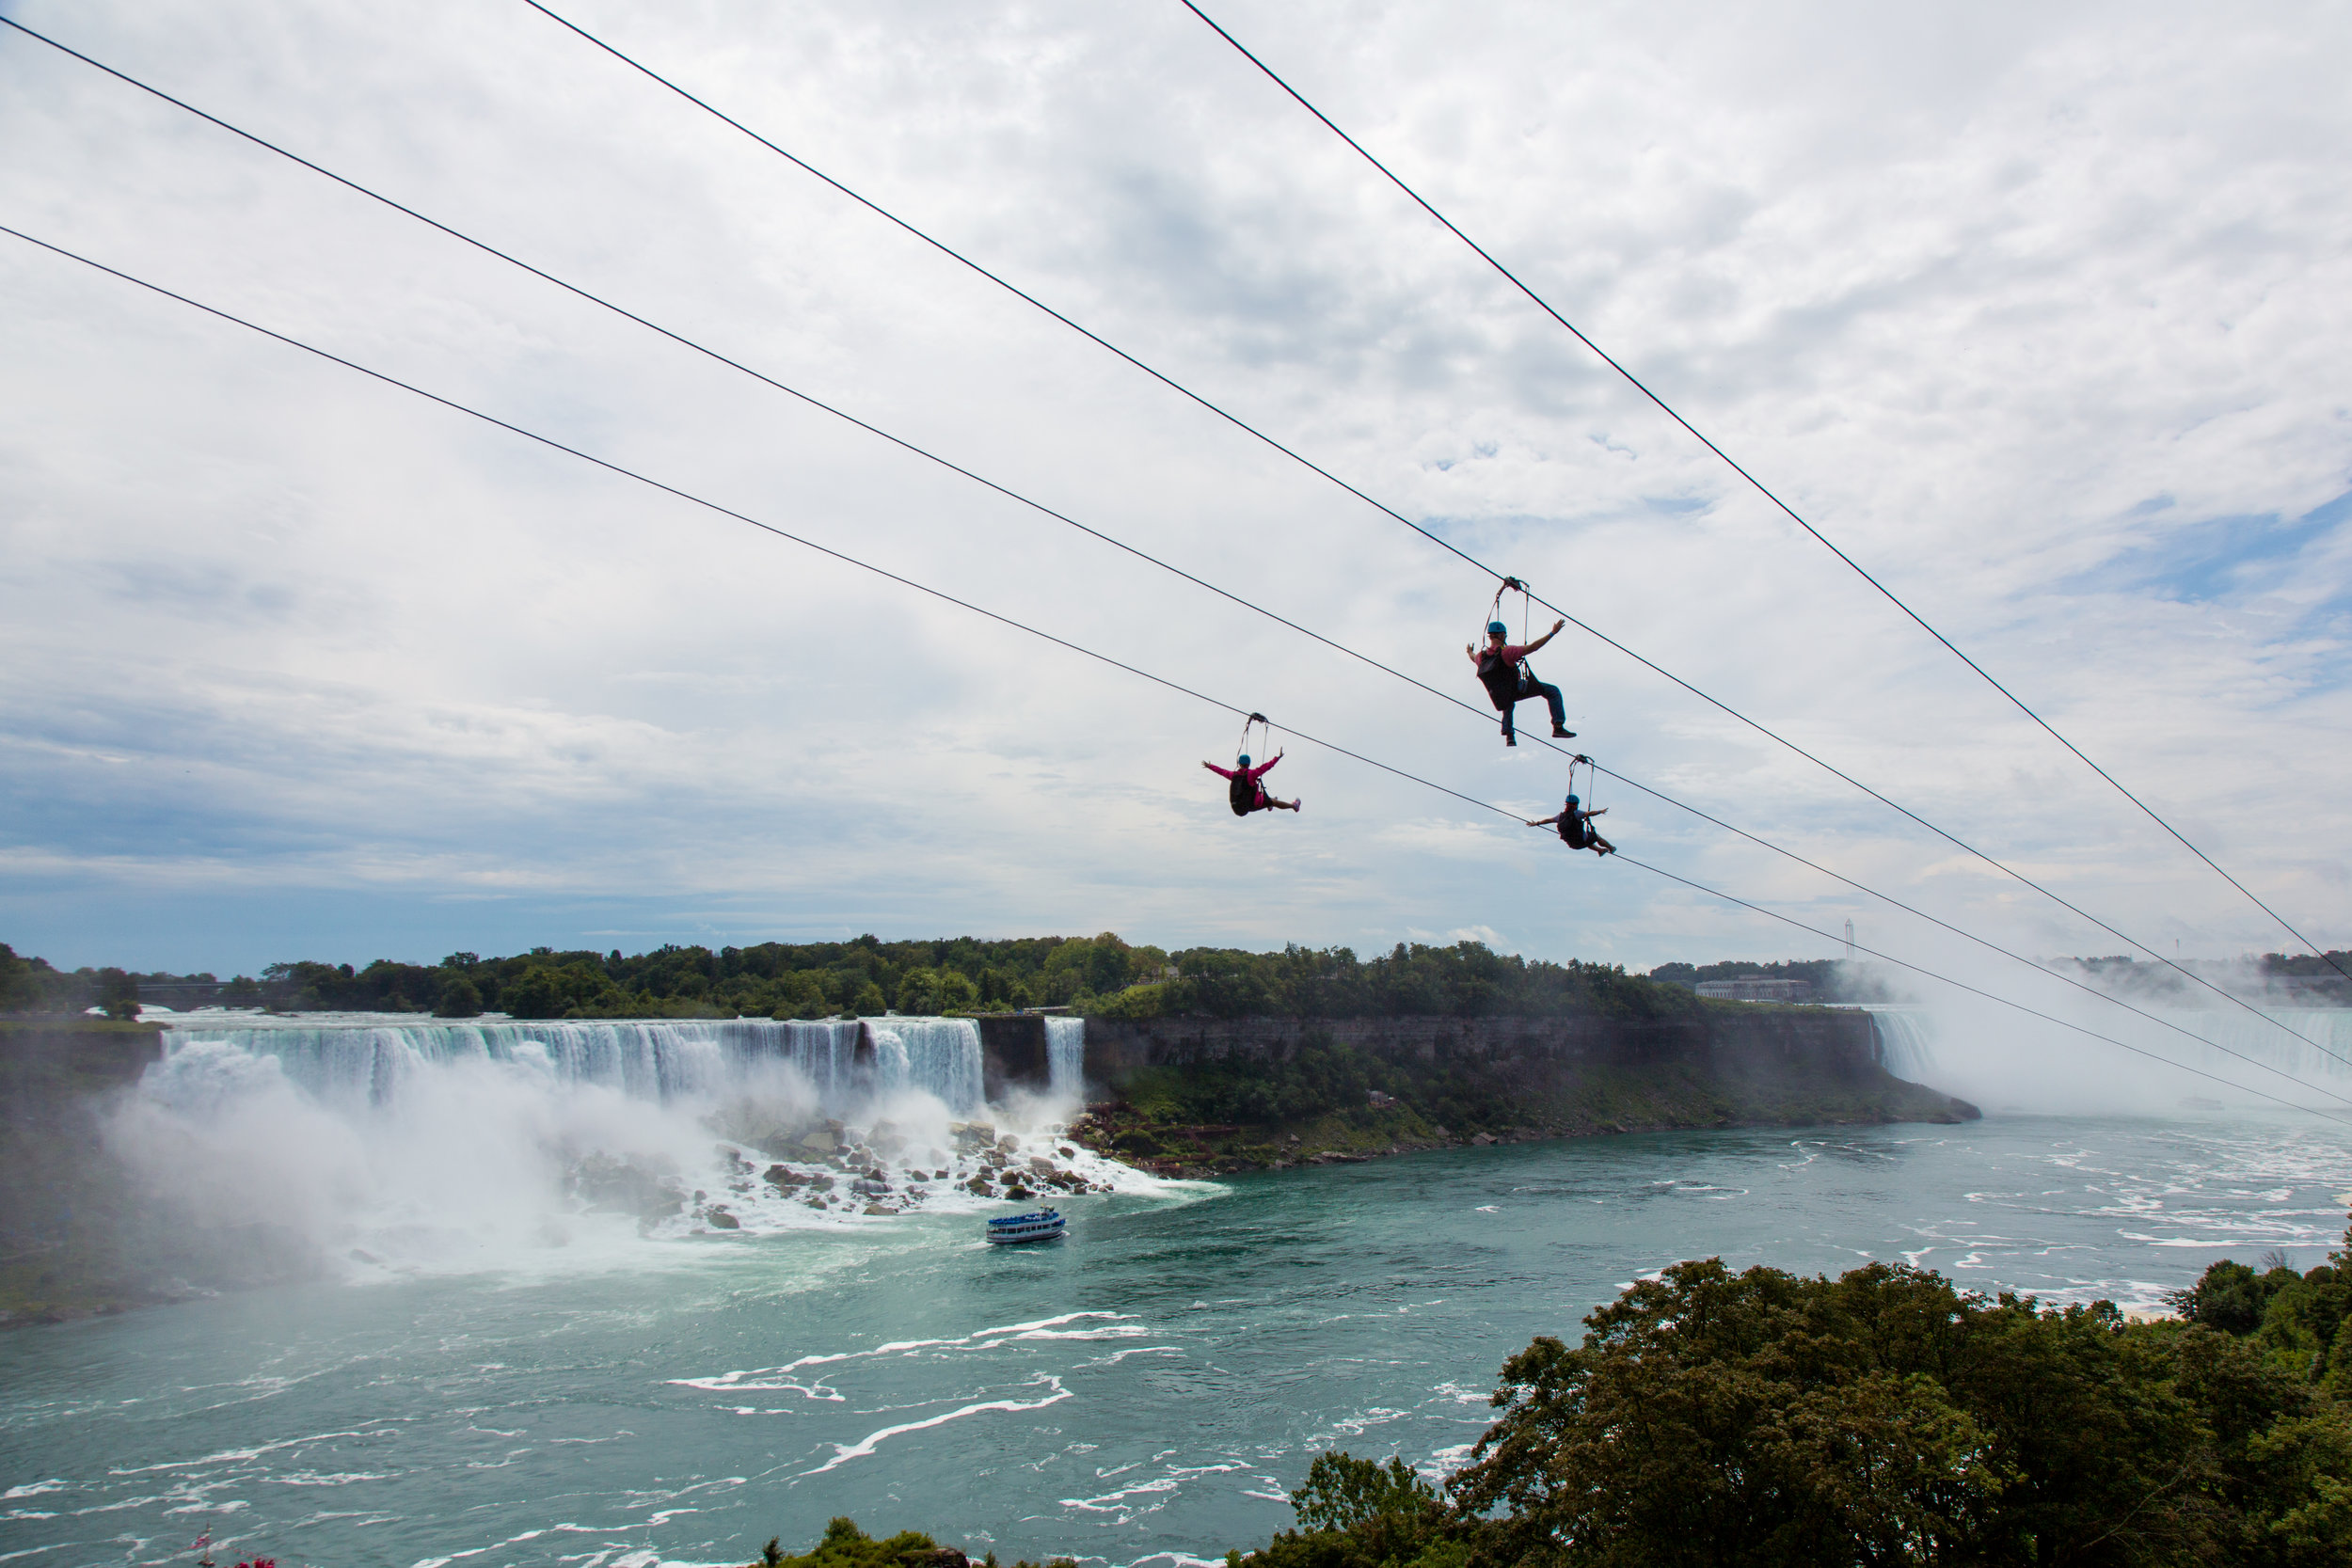 Zip liners take a ride on the Canadian side, with the American falls, and the Maid of the Mist in the background.